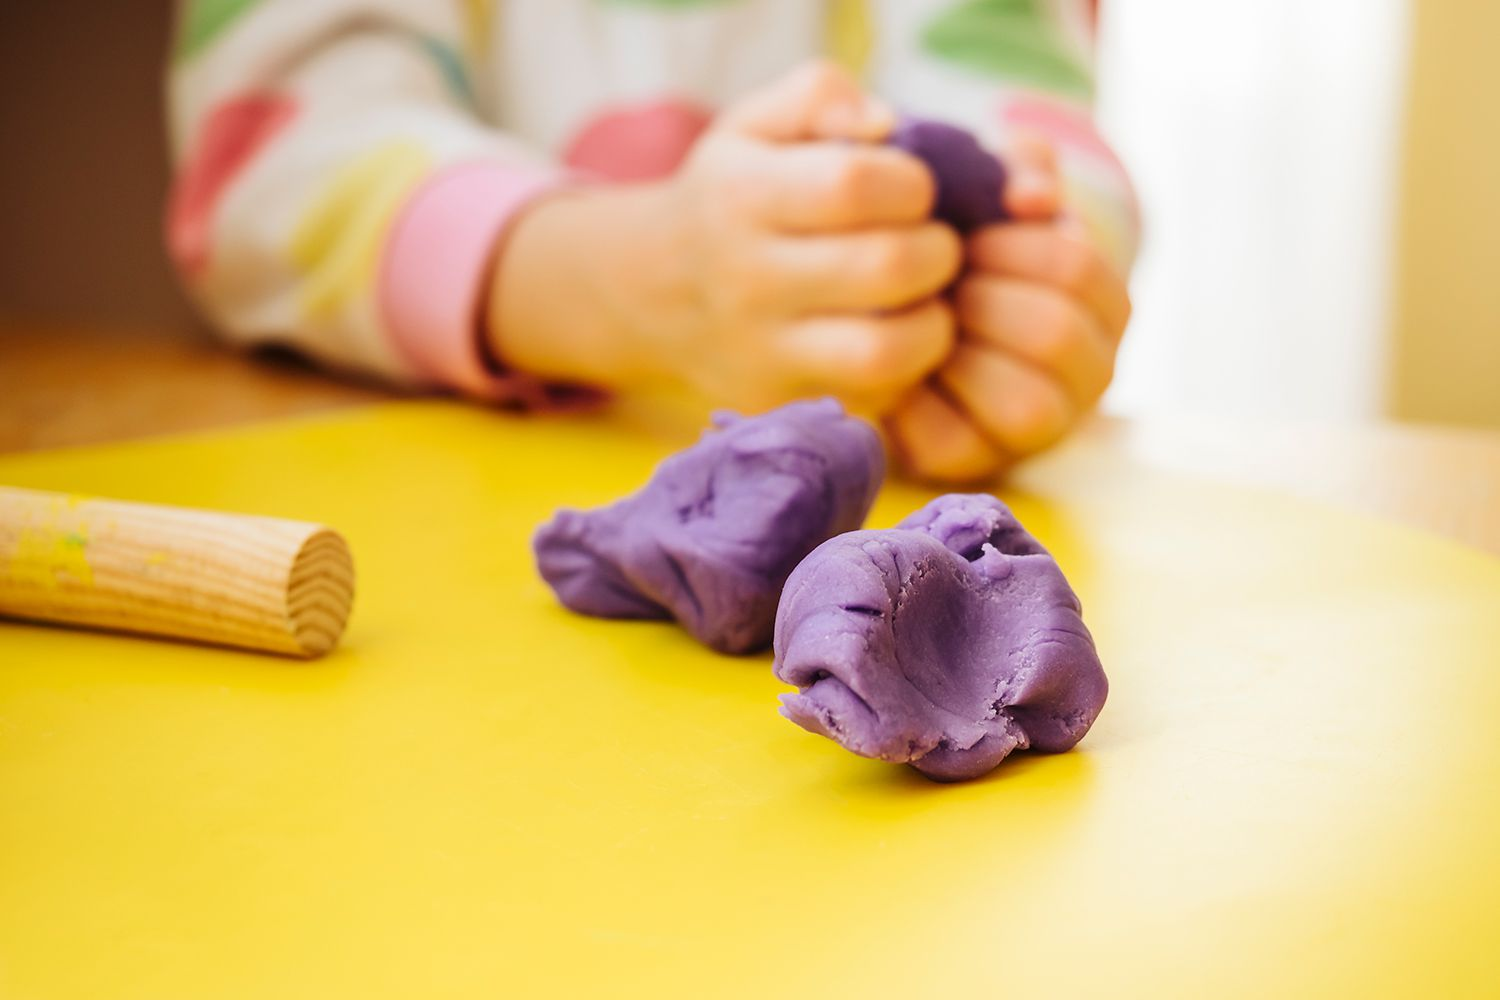 Childs hands kneading modelling clay